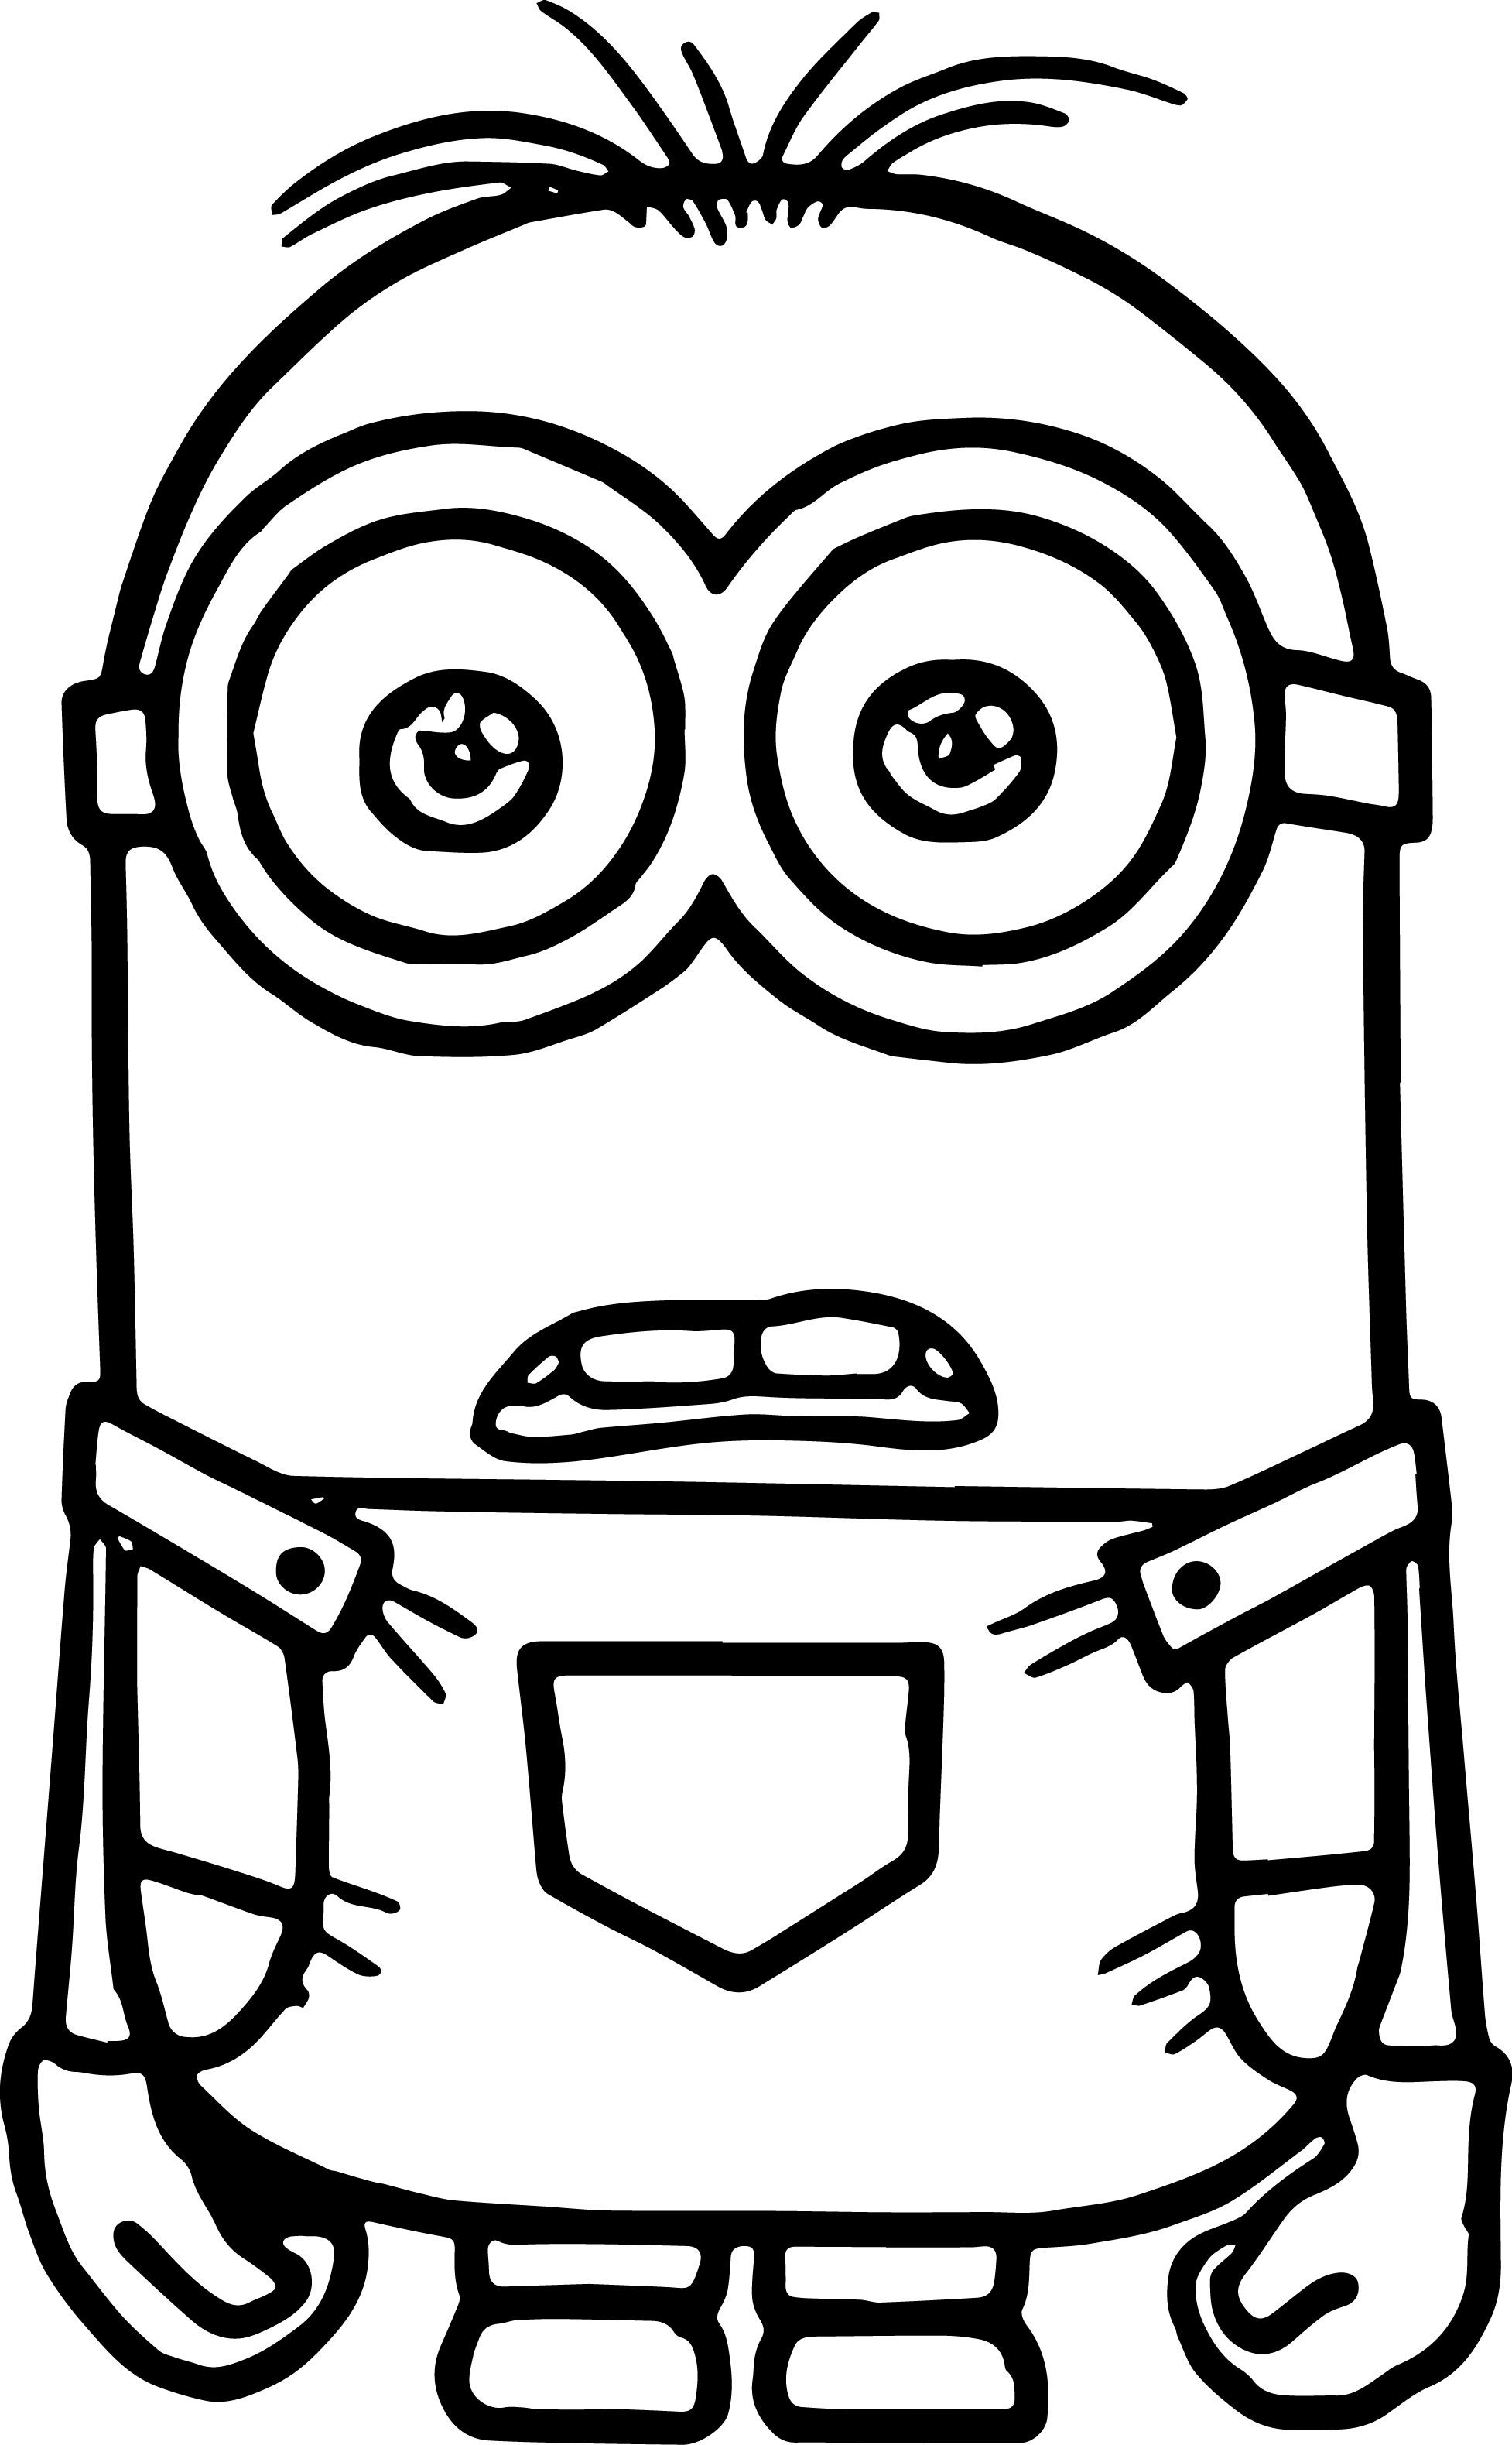 Awesome Perfect Minion Coloring Page Minion Coloring Pages Minions Coloring Pages Disney Coloring Pages